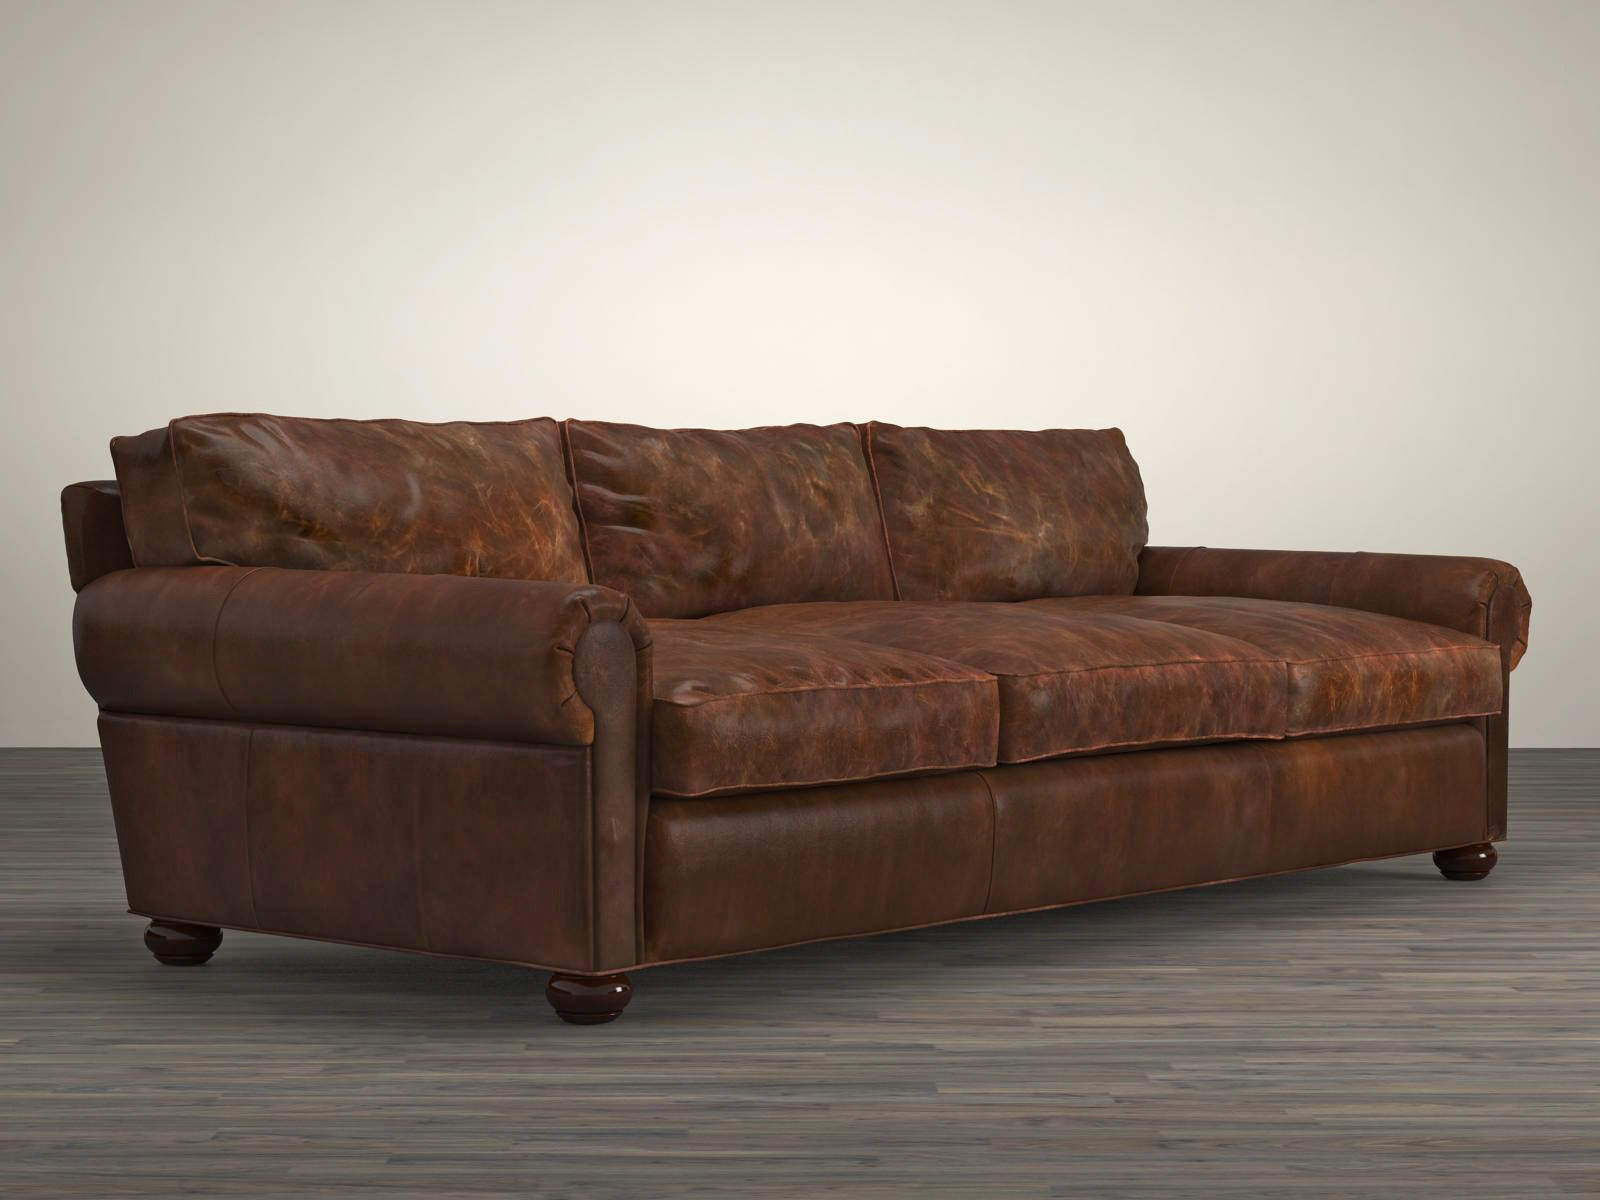 Restoration Hardware Leather : Quot lancaster leather sofa d model restoration hardware